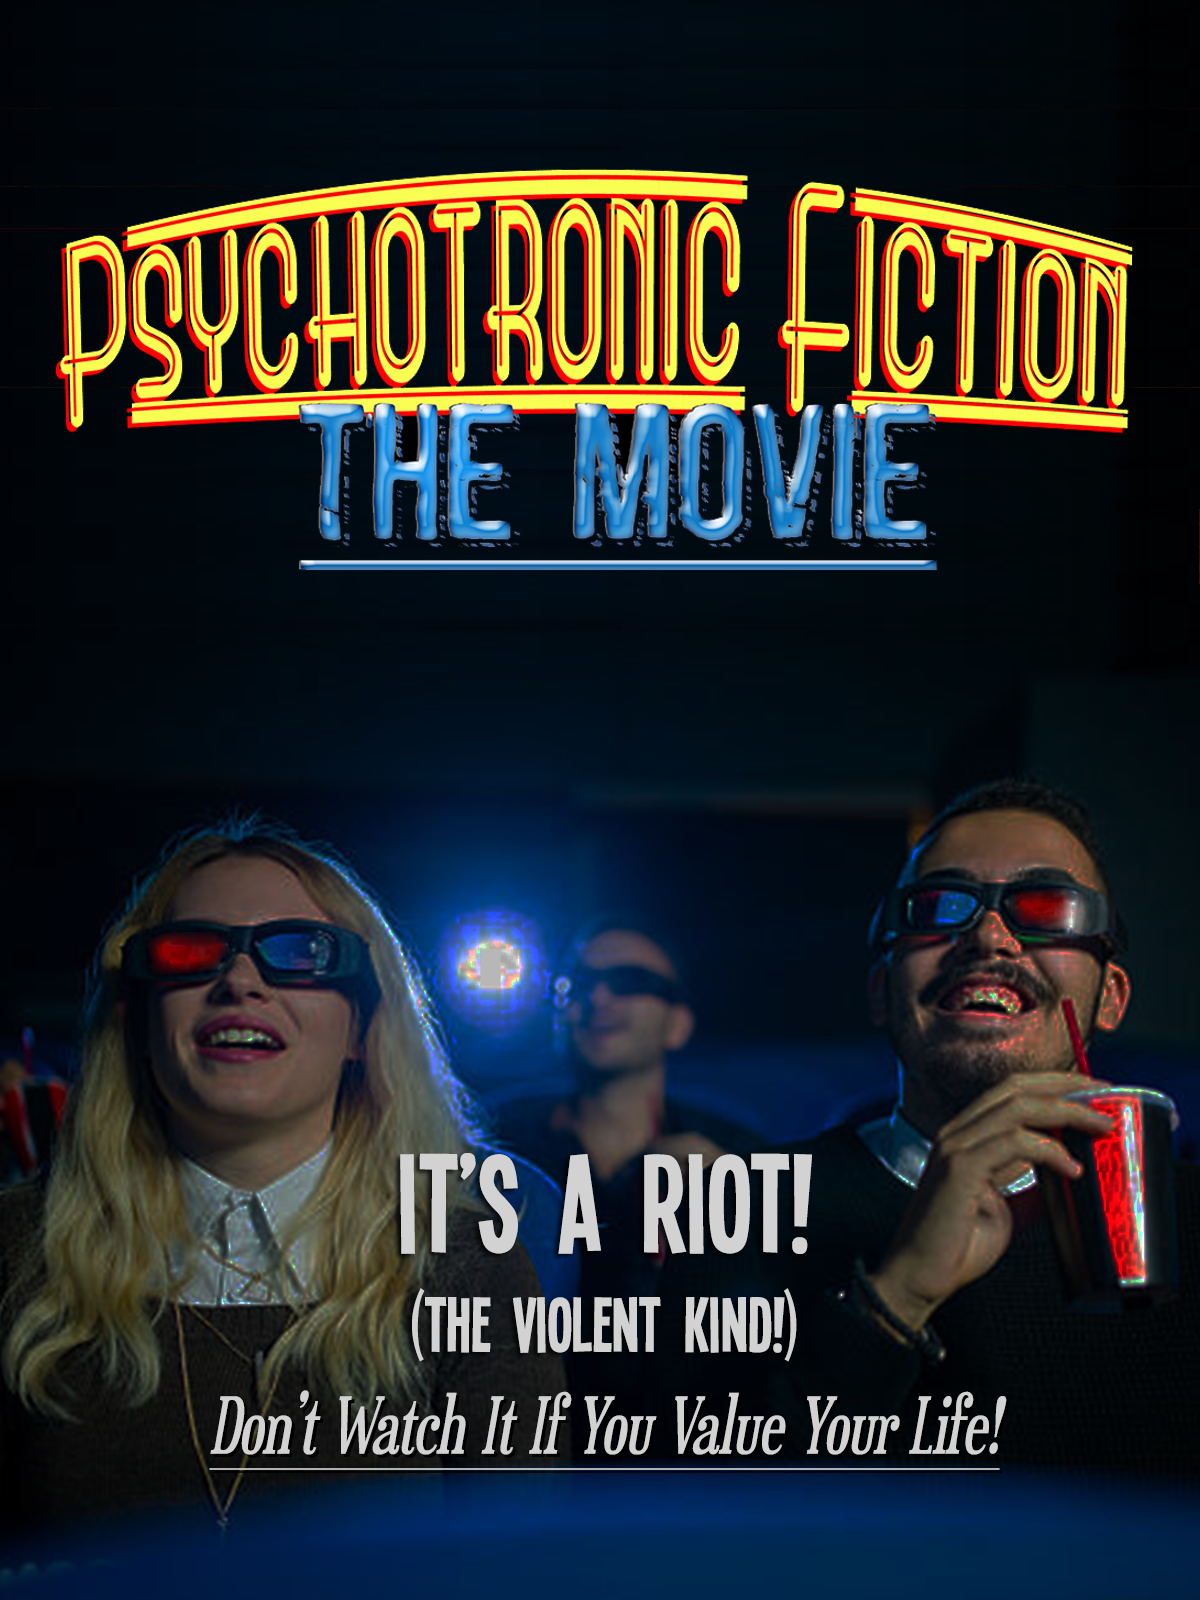 Psychotronic Fiction